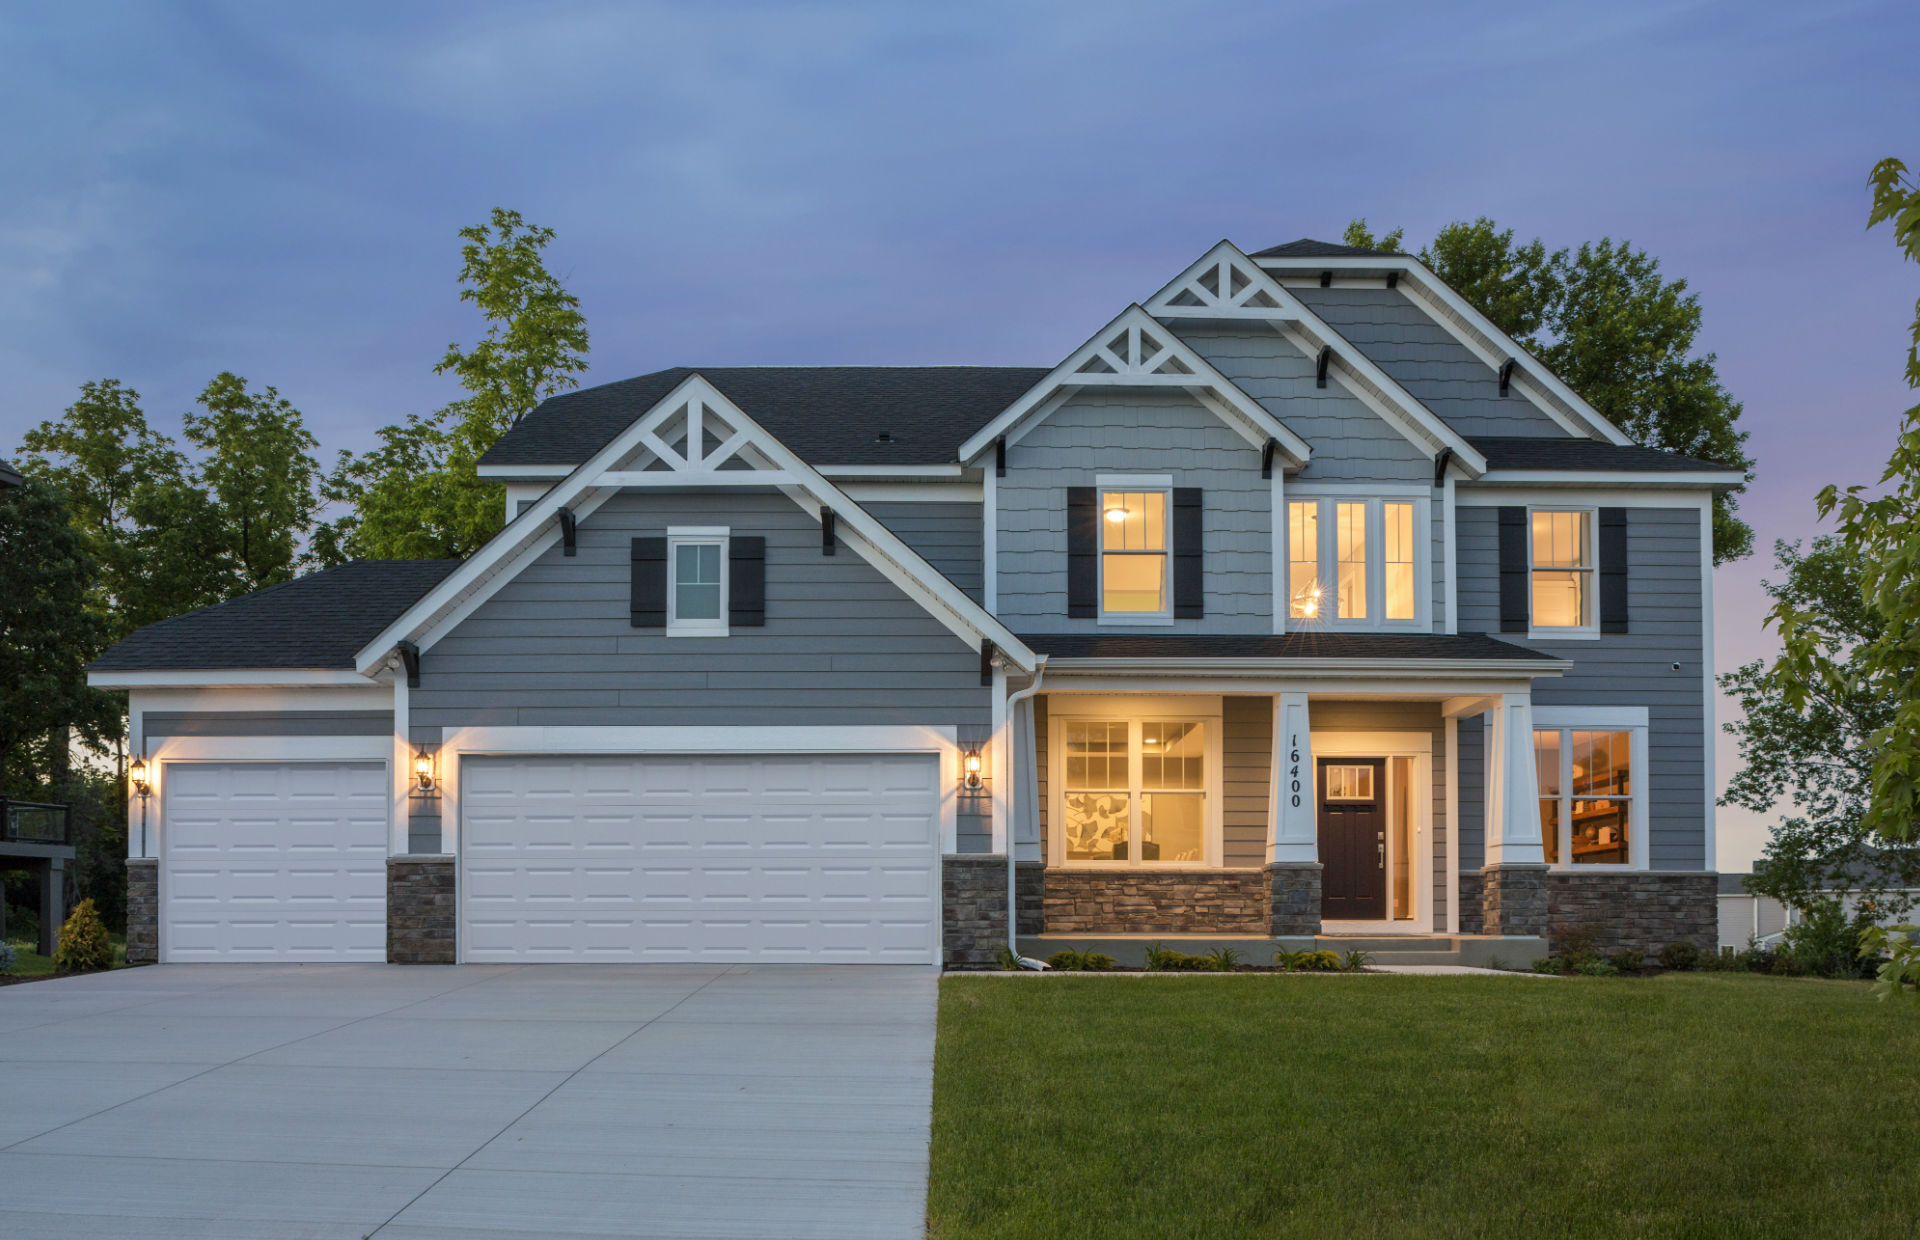 Aspen Hollow by Pulte Homes image 7